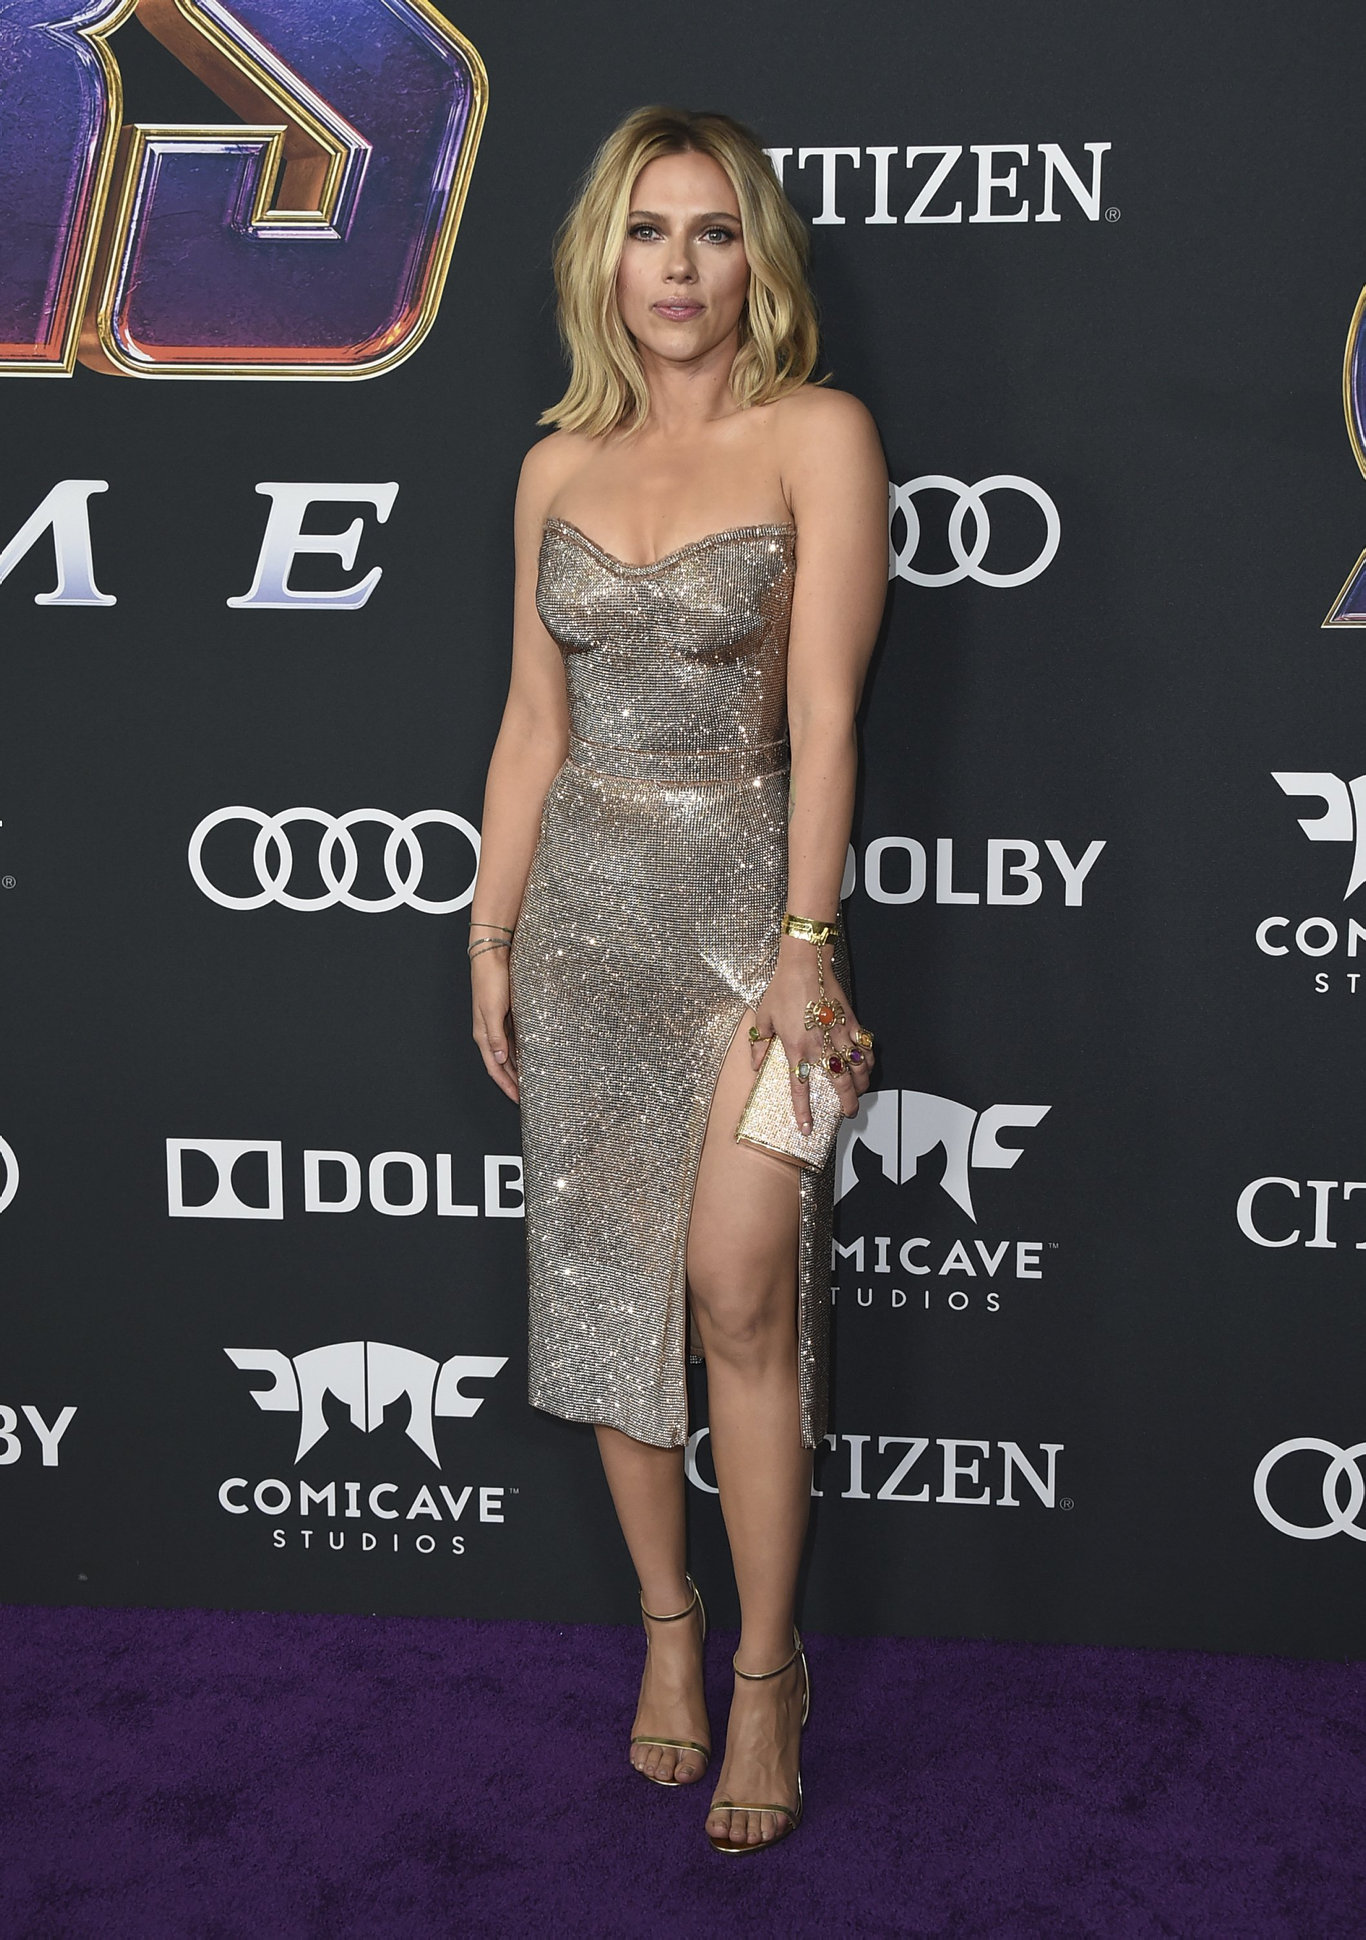 Scarlett Johansson arrives at the premiere of Avengers: Endgame at the Los Angeles Convention Center.